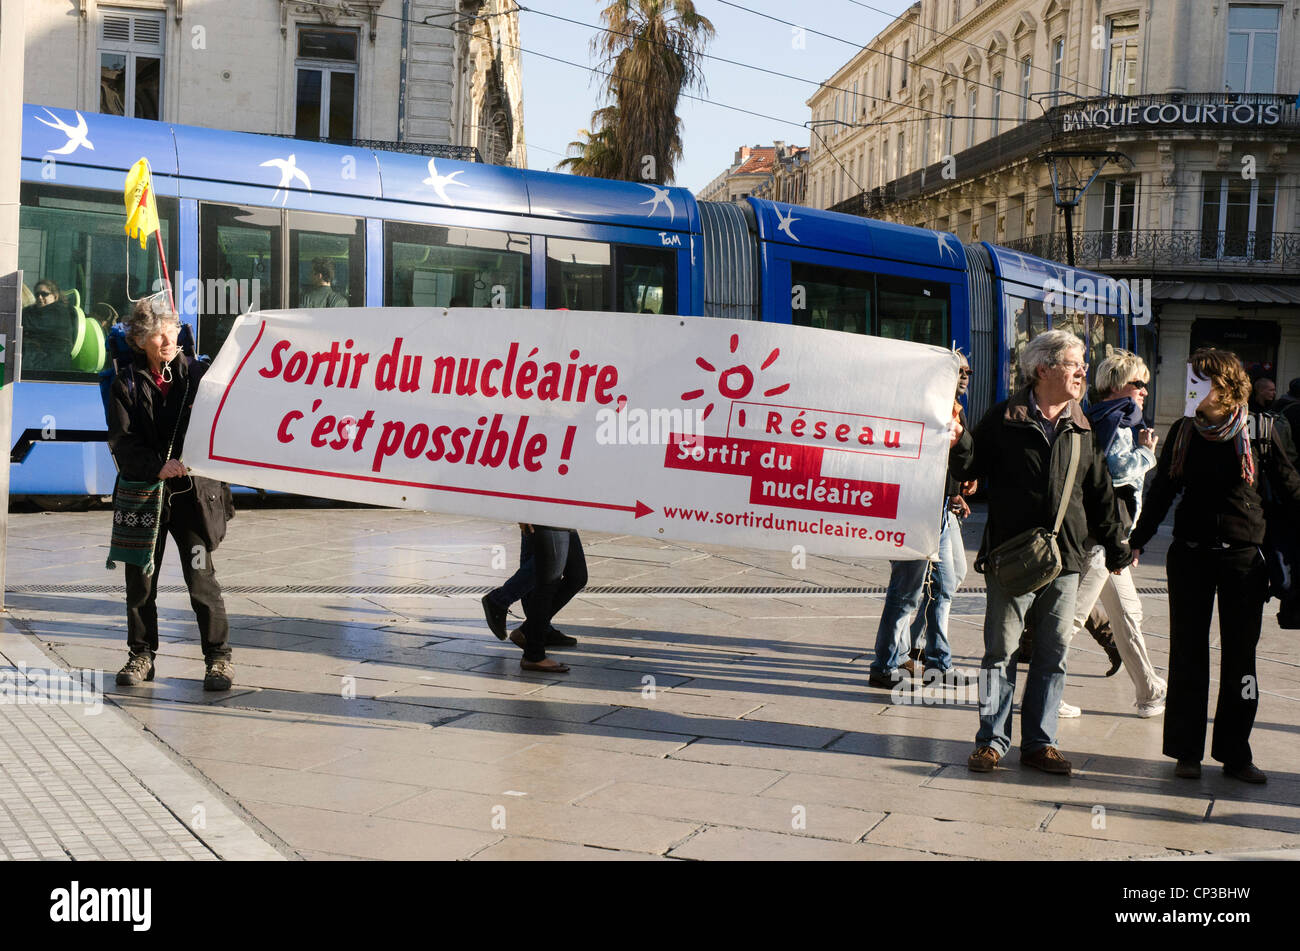 Anti-nuclear protest in the center of Montpellier with a city tram behind - Stock Image